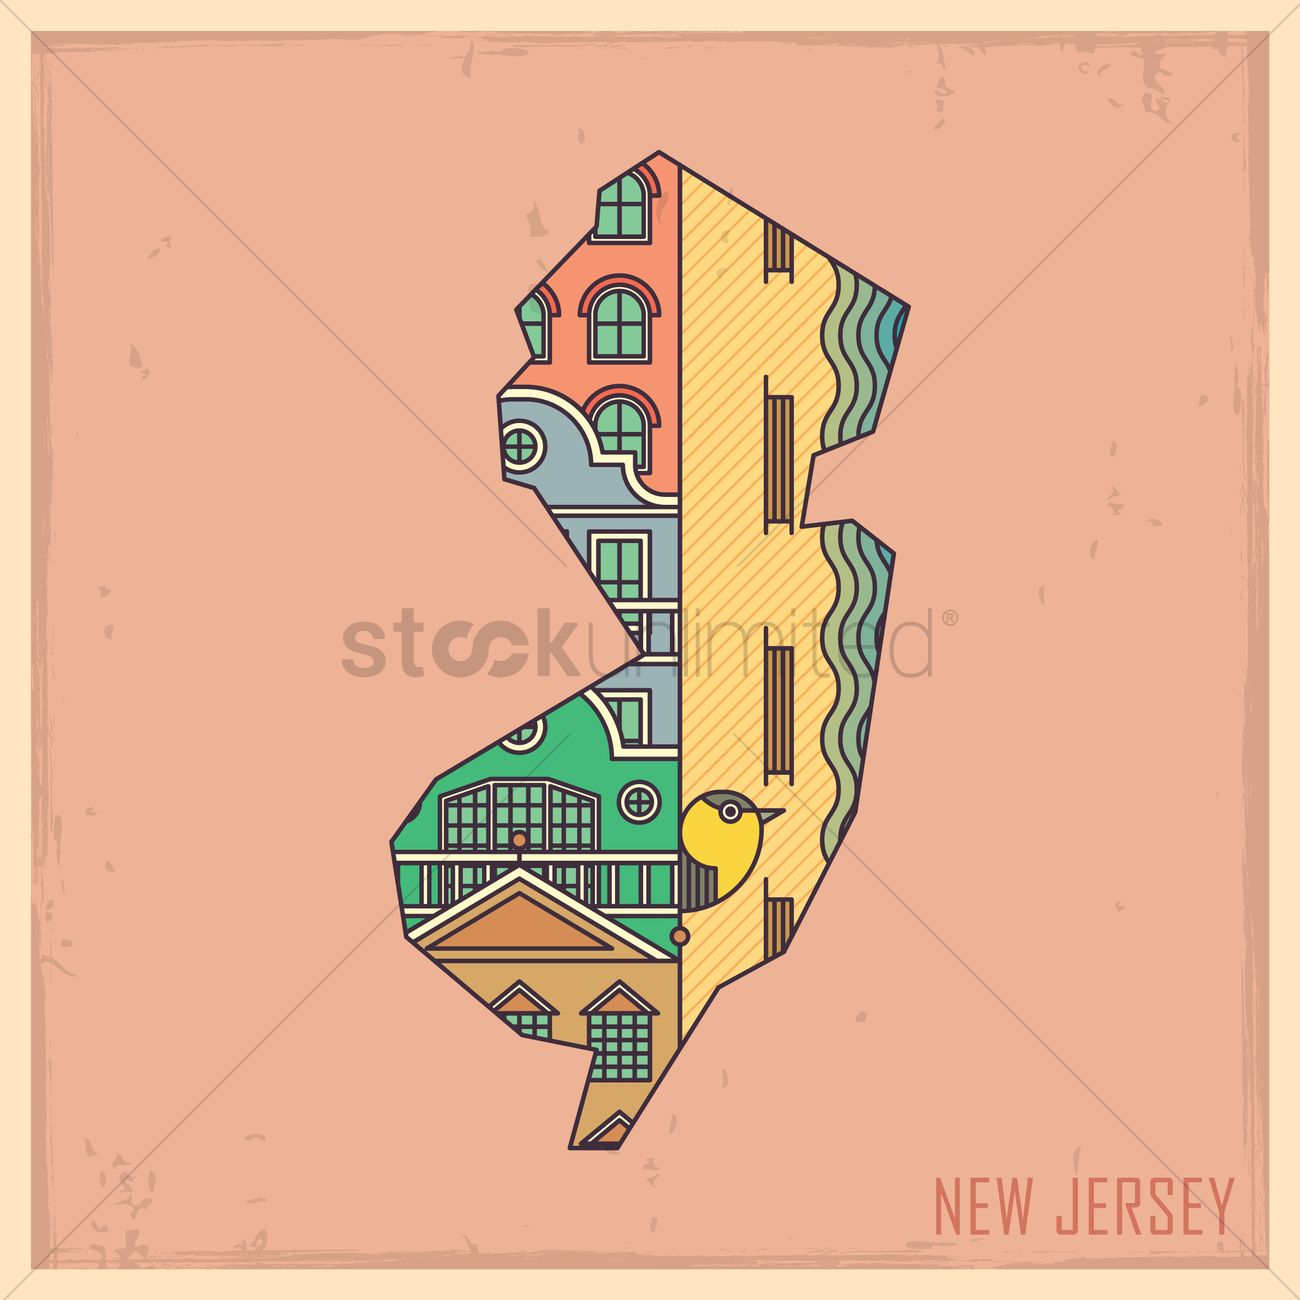 New jersey state map Vector Image - 1563478 | StockUnlimited